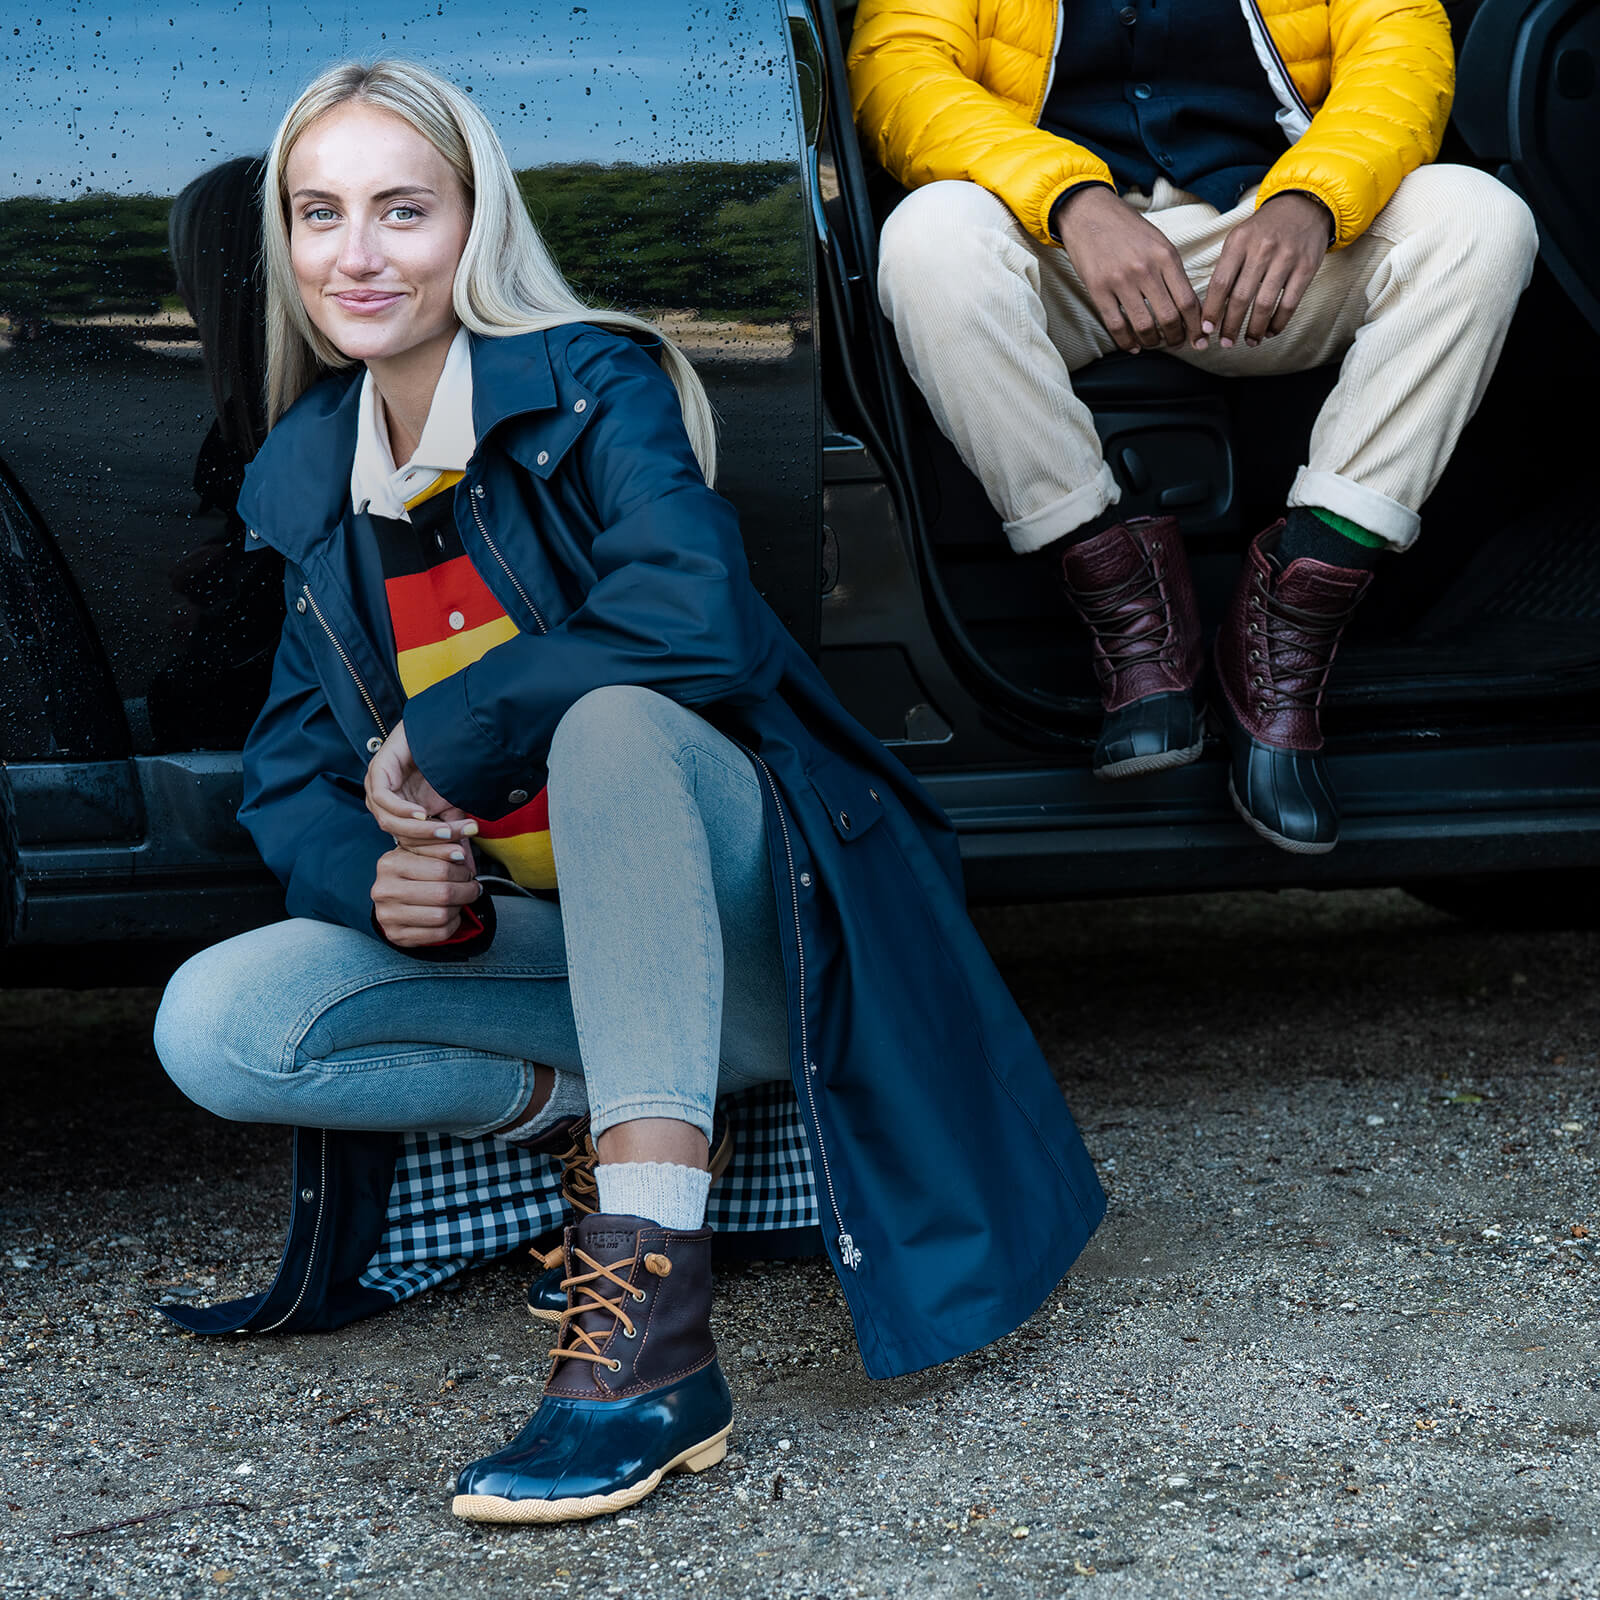 Crouching beside a car on gravel wearing blue Saltwater boots.